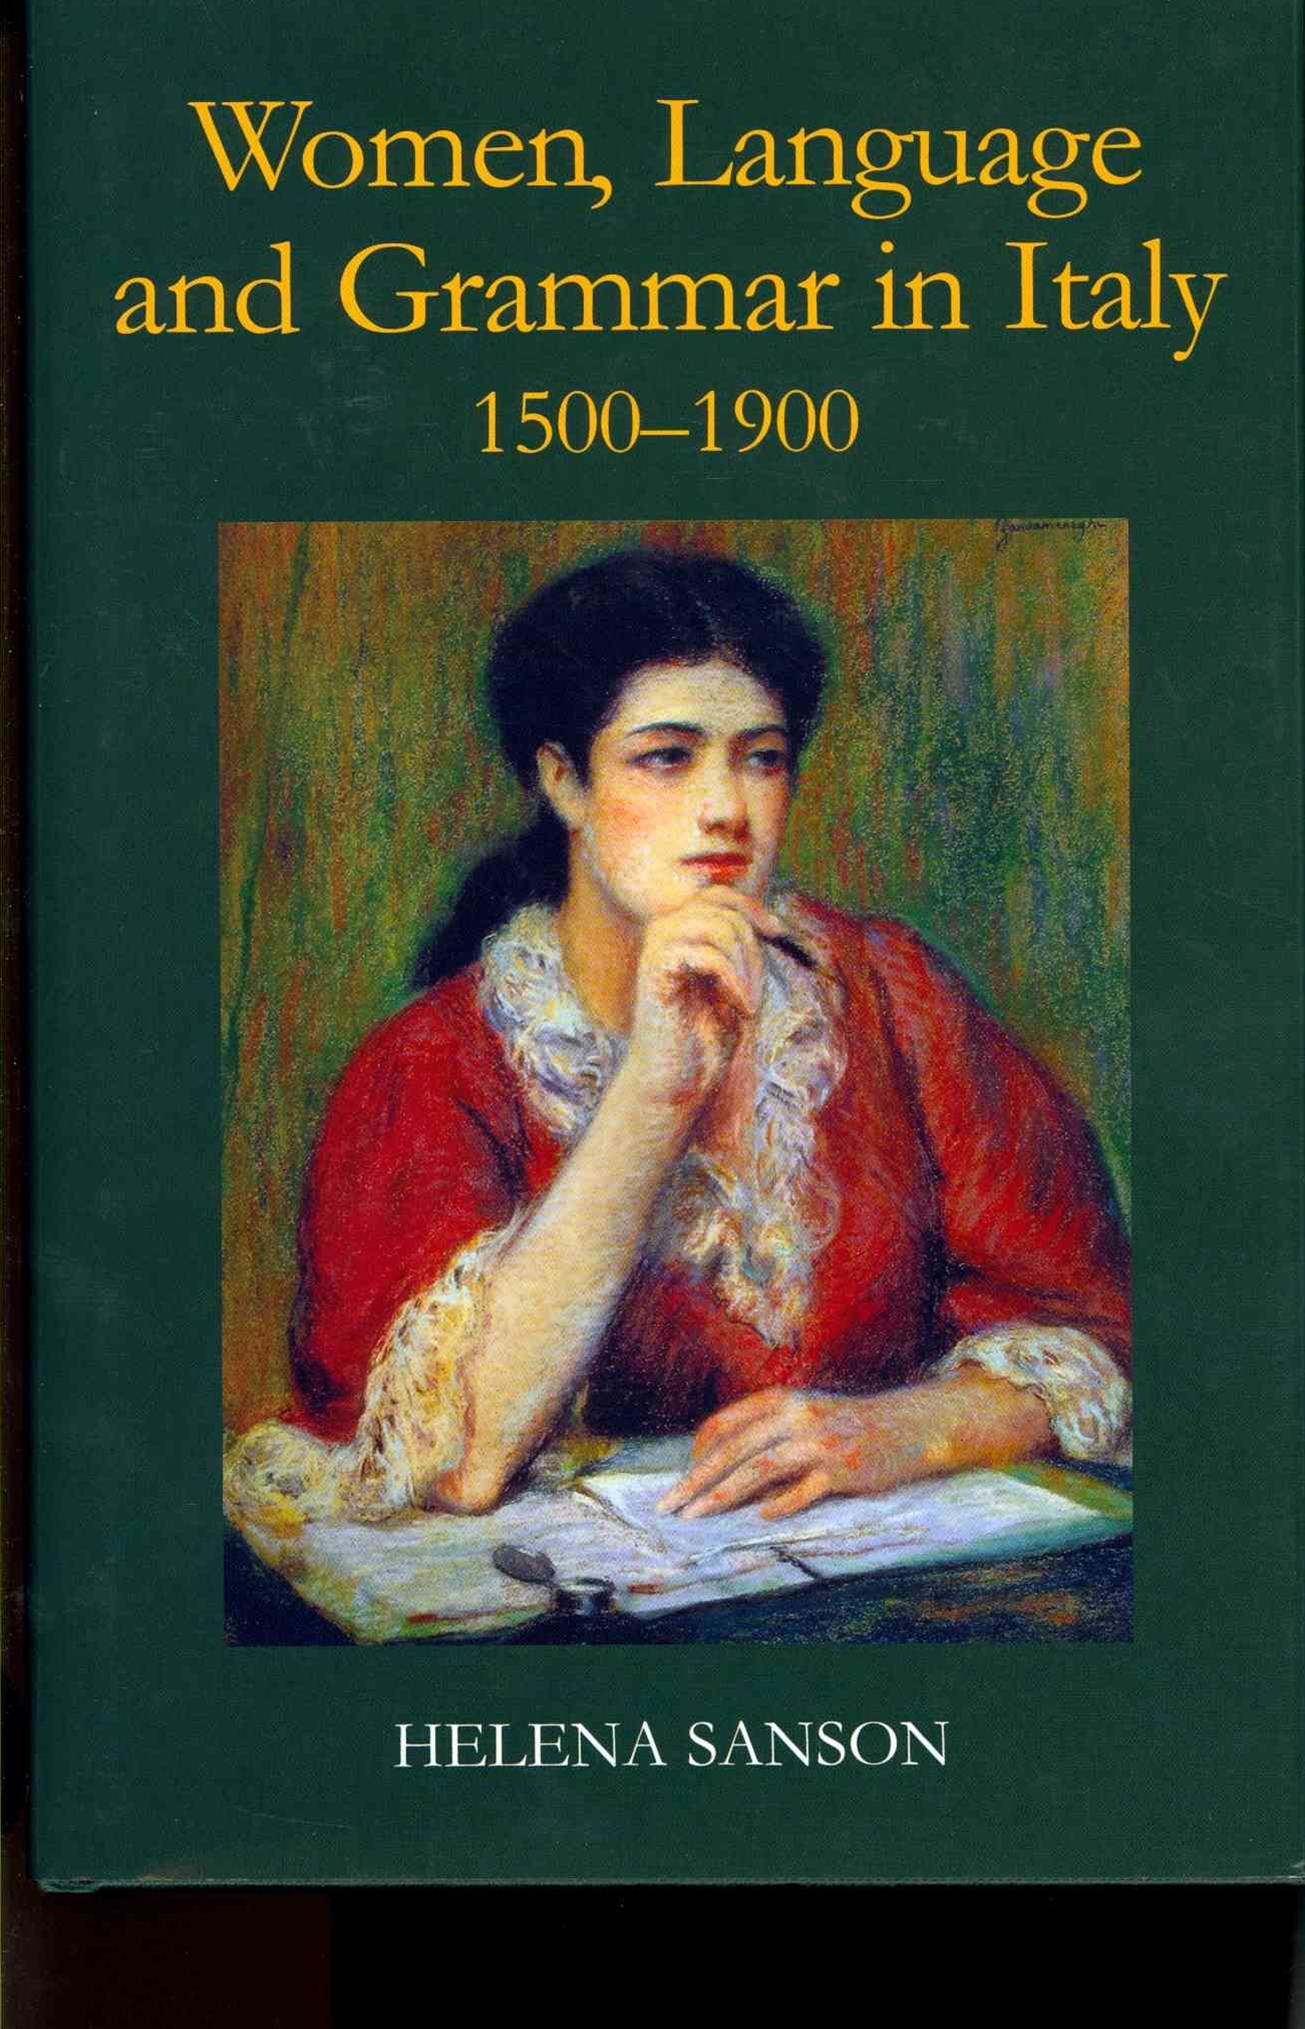 Women, Language and Grammar in Italy, 1500-1900